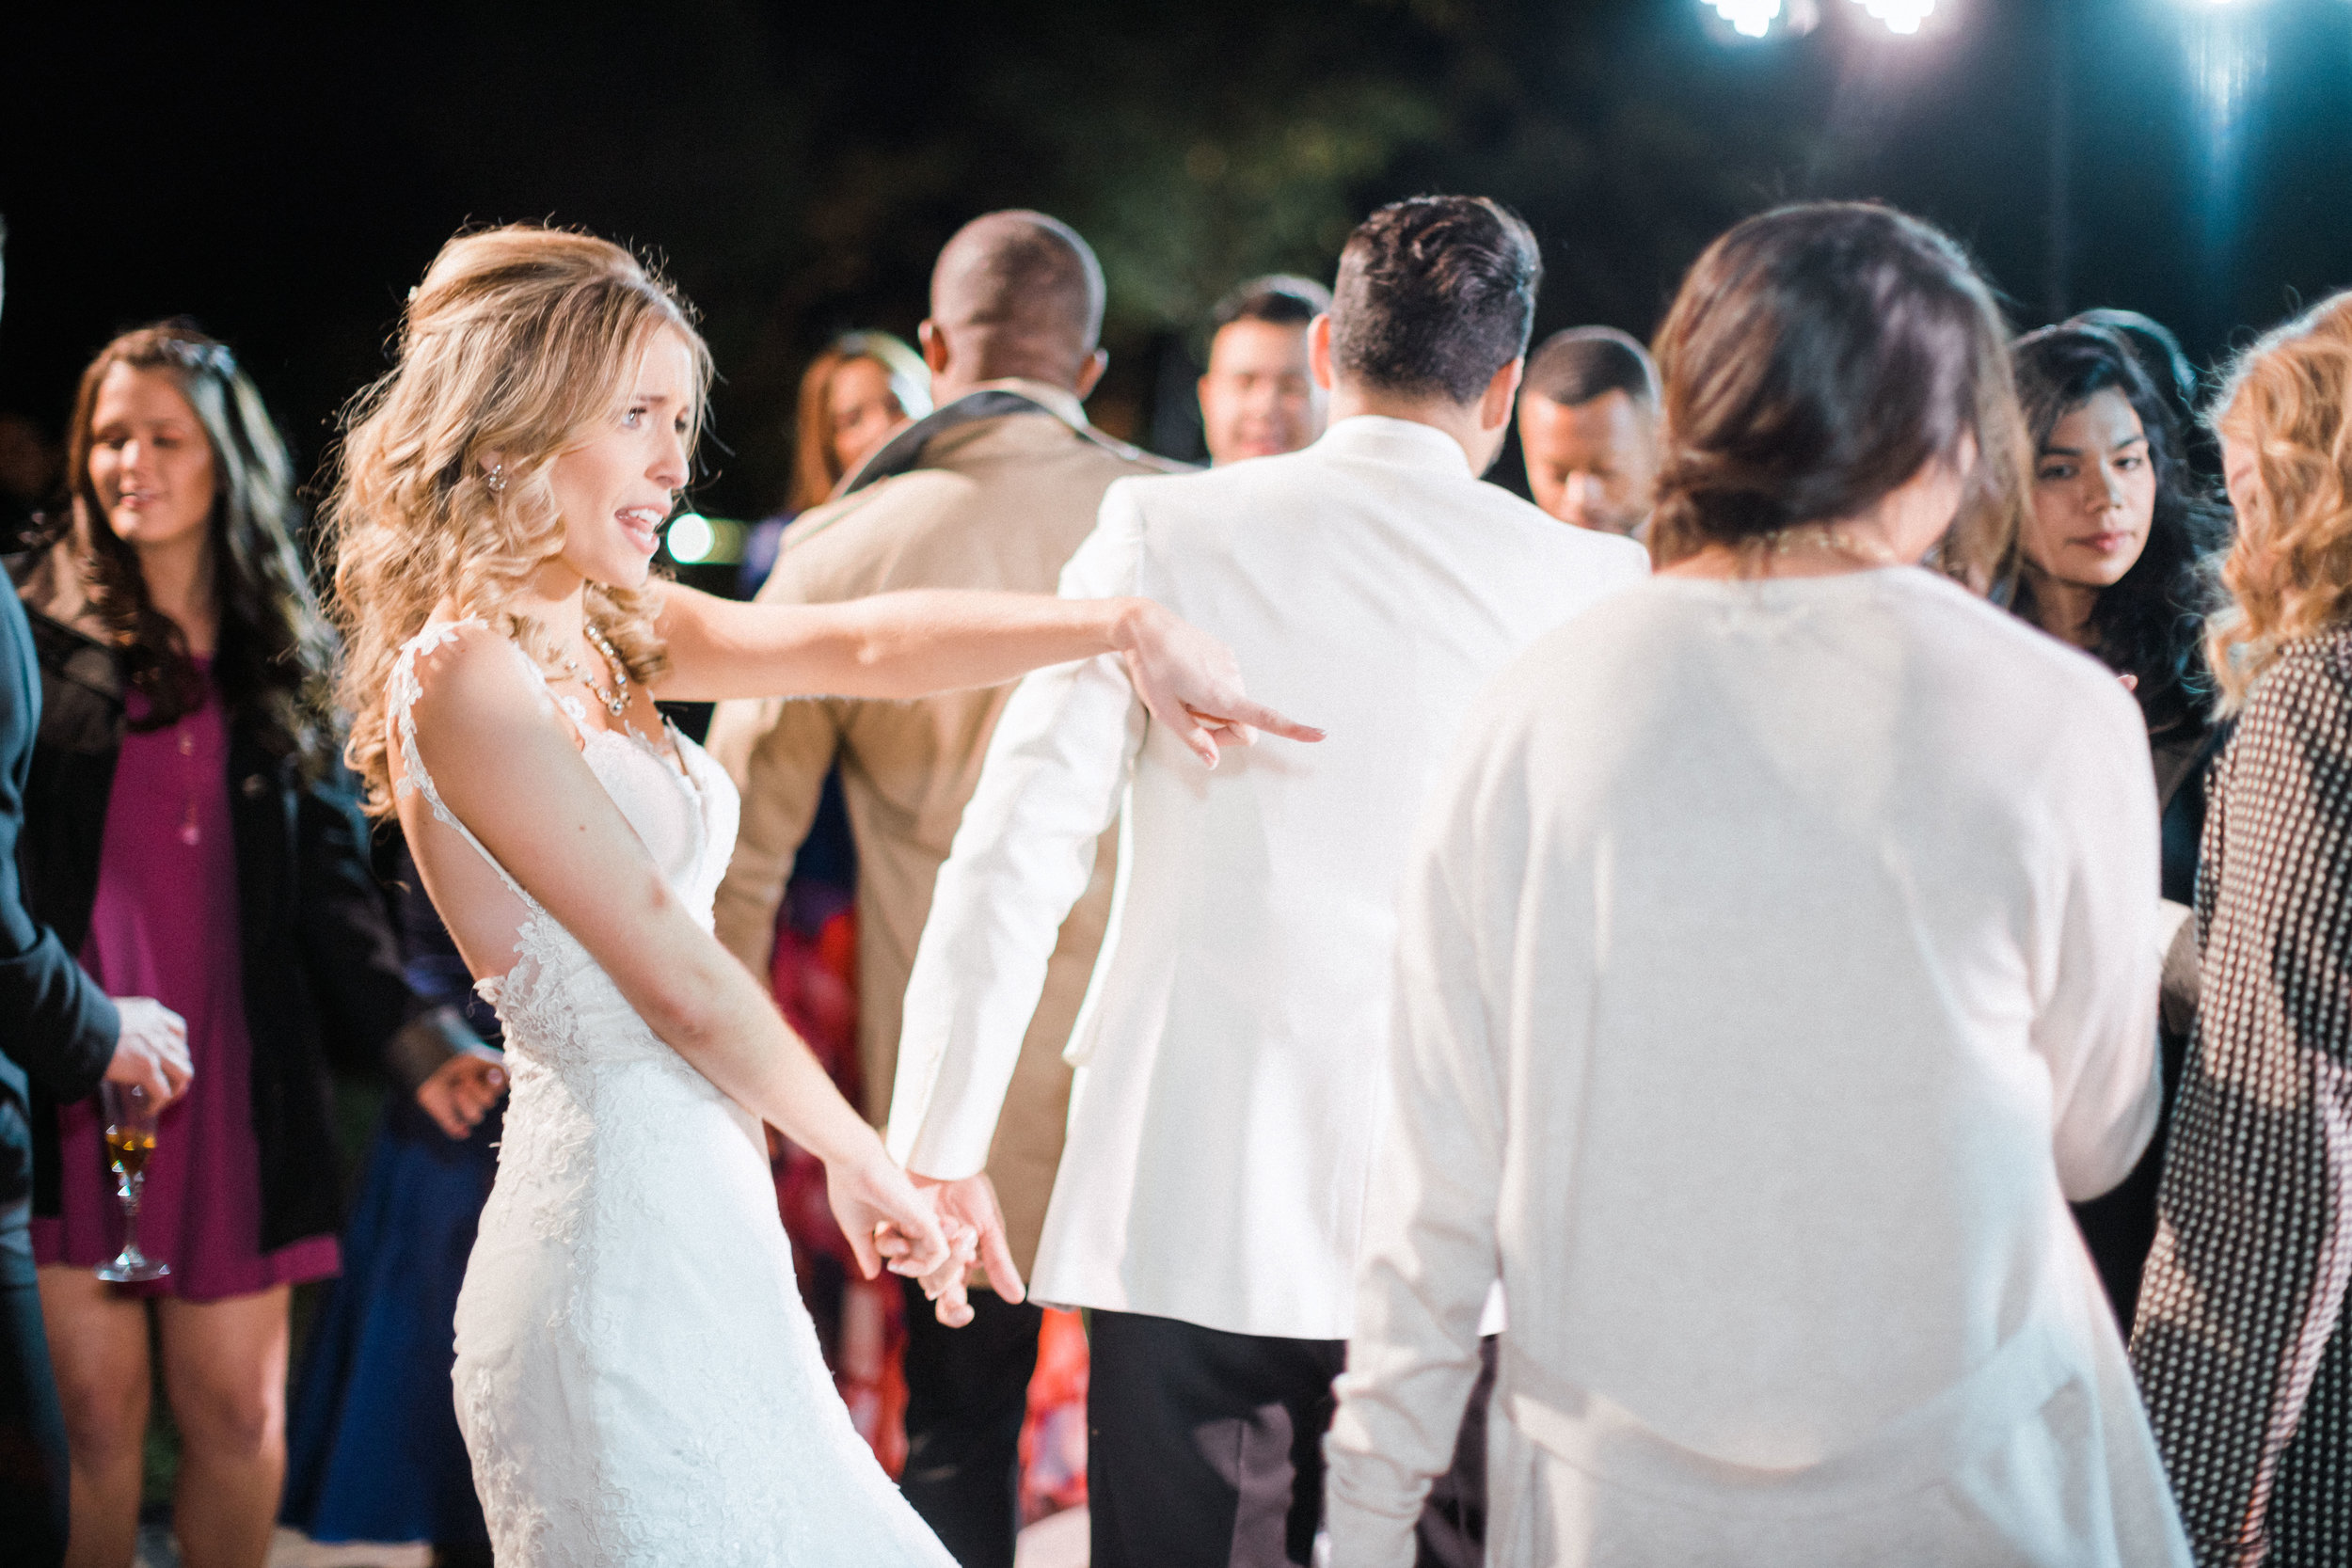 first-dance-florida-wedding-fort-myers-la-casa-toscana-outdoor-ceremony-winter-wedding-brown-chairs-white-gazebo-planned-by-mostly-becky-weddings-traveling-wedding-planner-destination-wedding-lakeside-bridal-portraits-bride-groom-black-tie-tux-formal-wedding